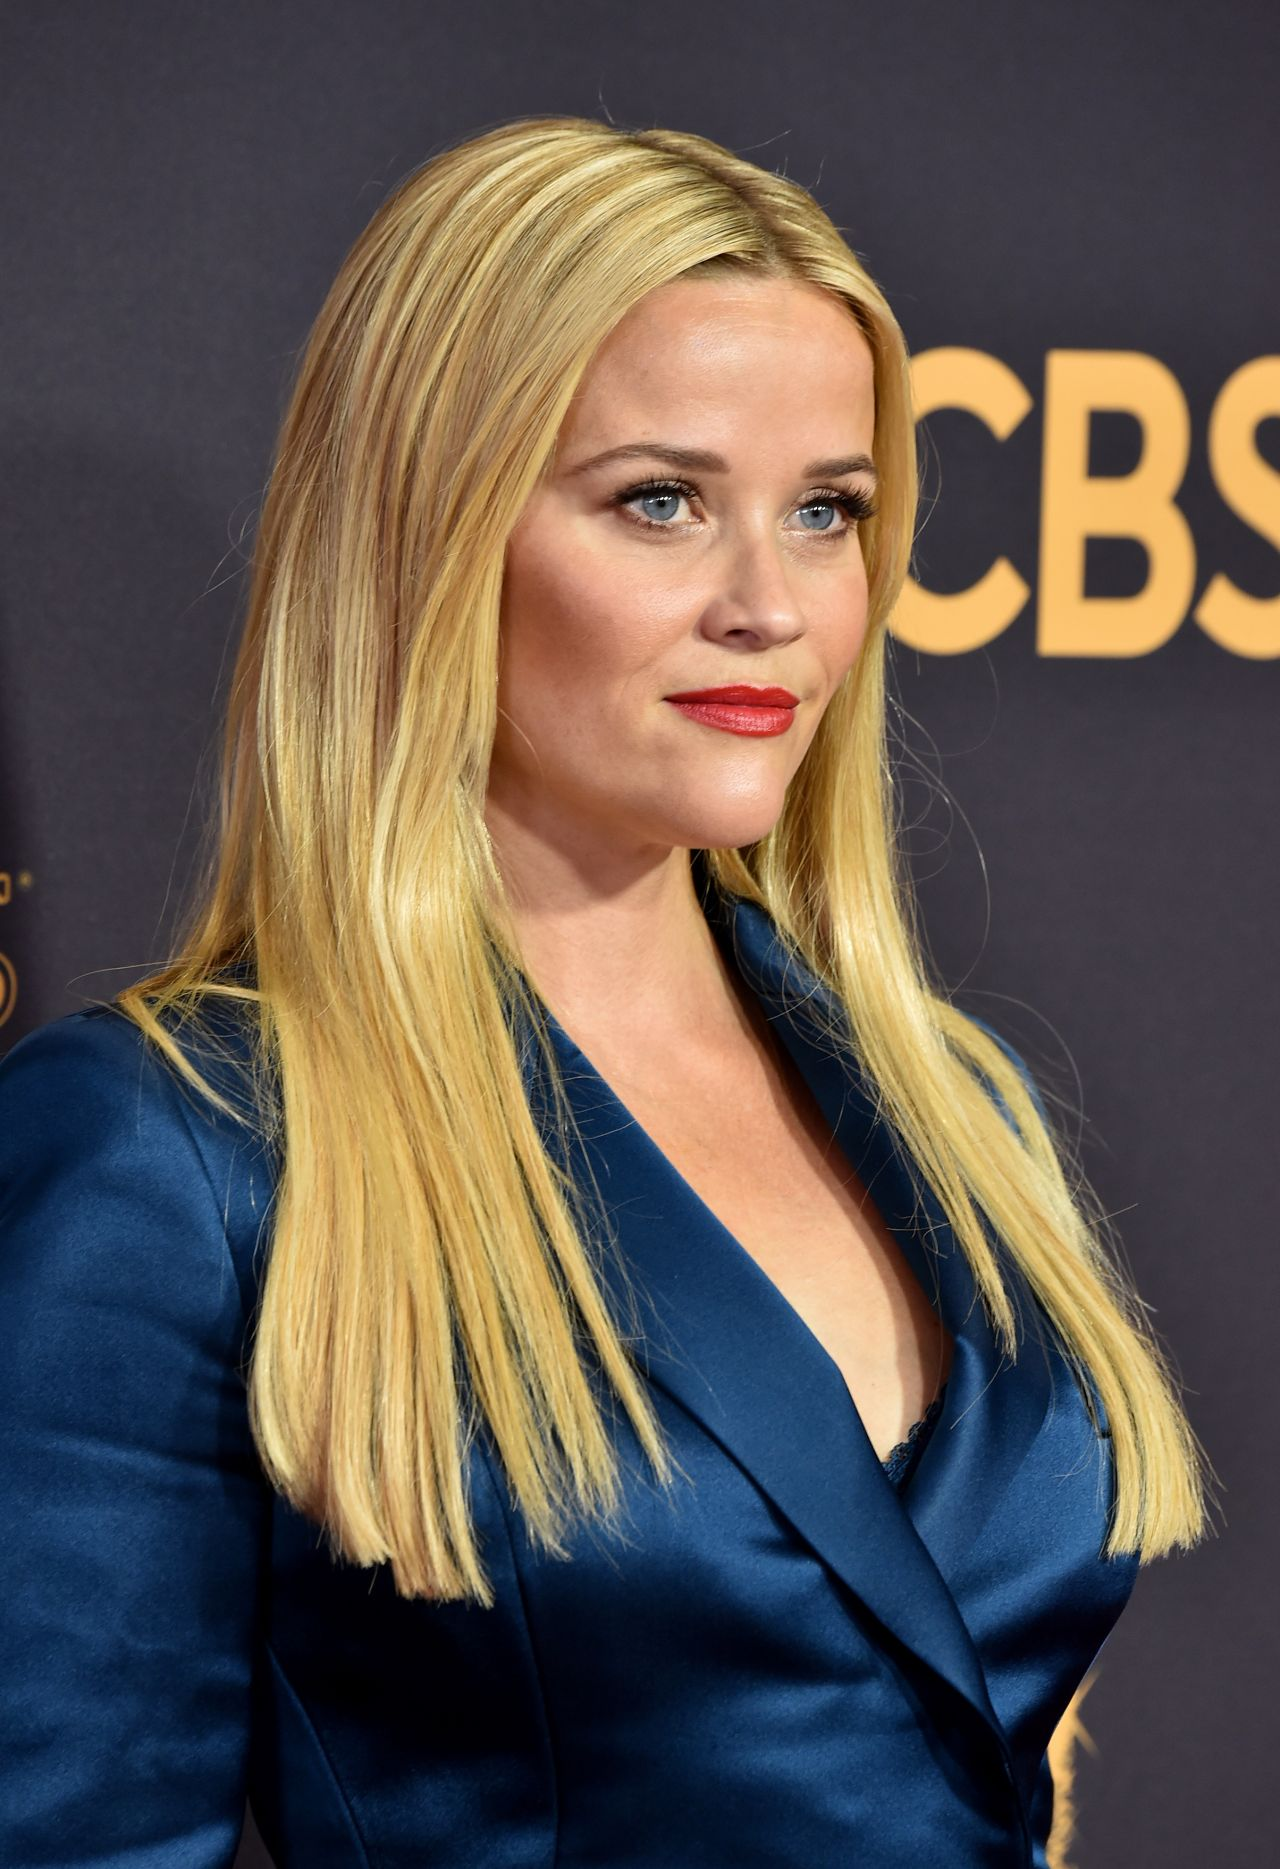 Reese Witherspoon Emmy Awards In Los Angeles 09 17 2017